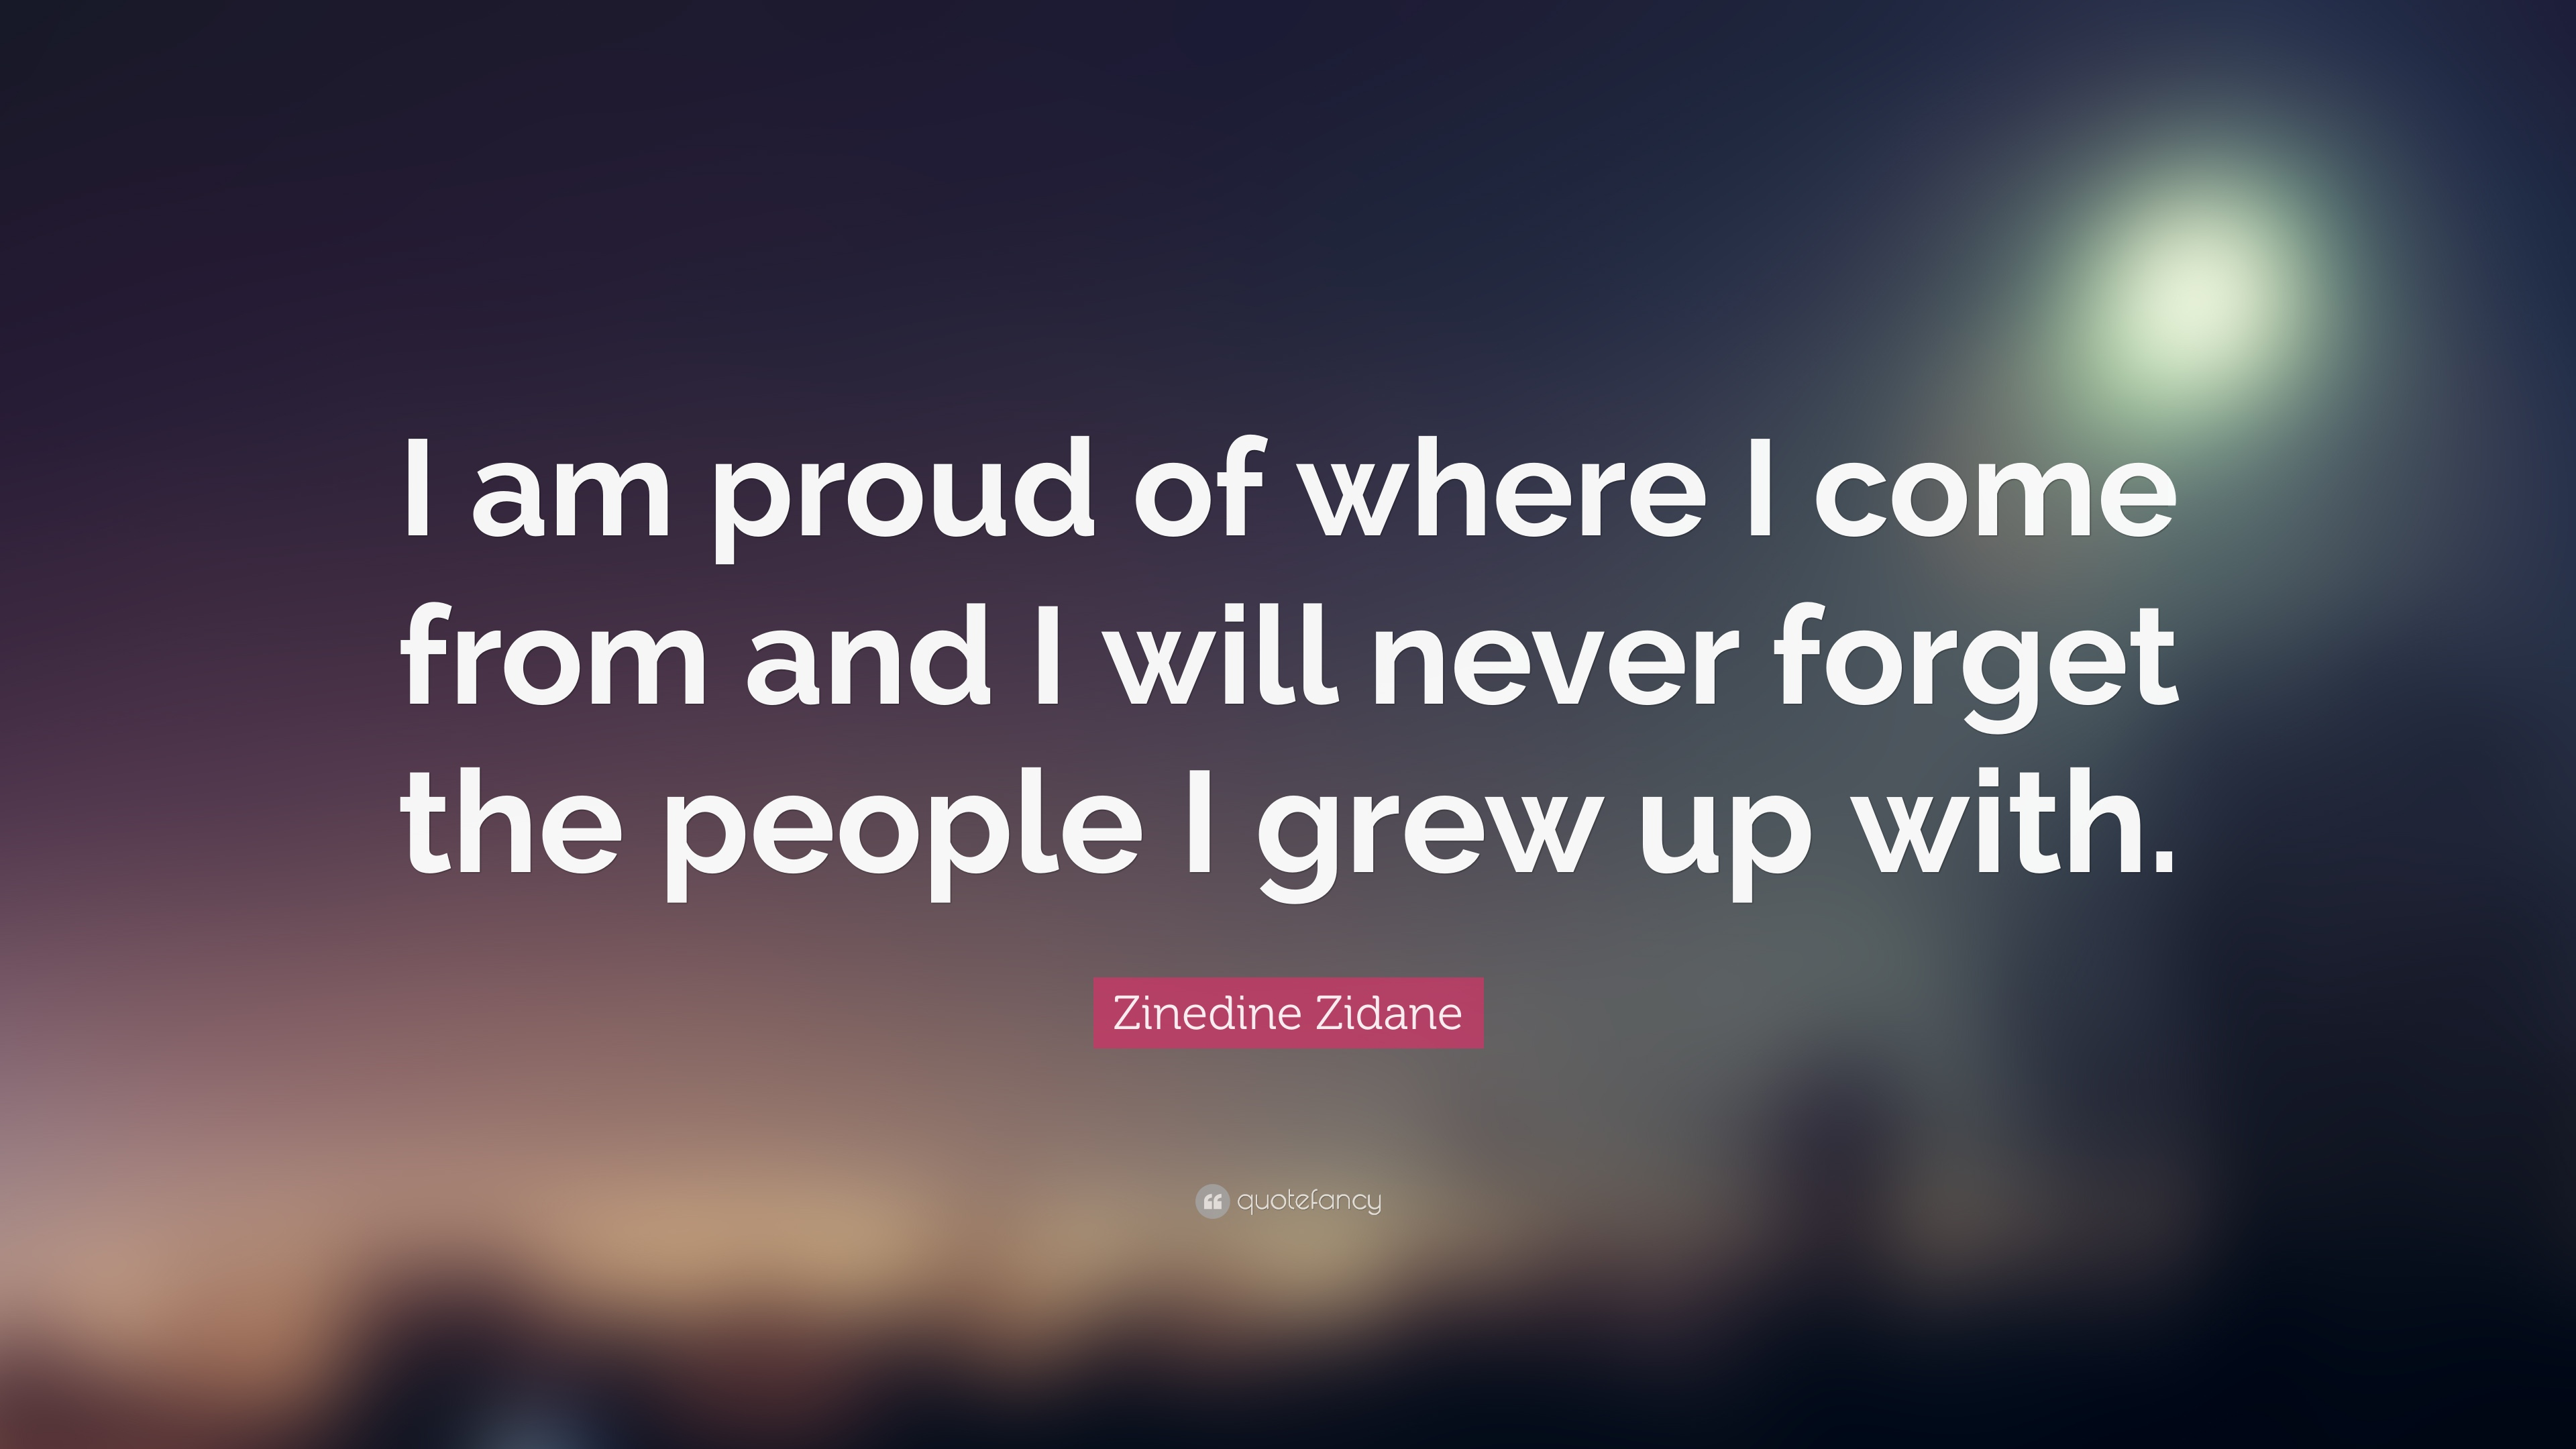 Zinedine zidane quote i am proud of where i come from and i will